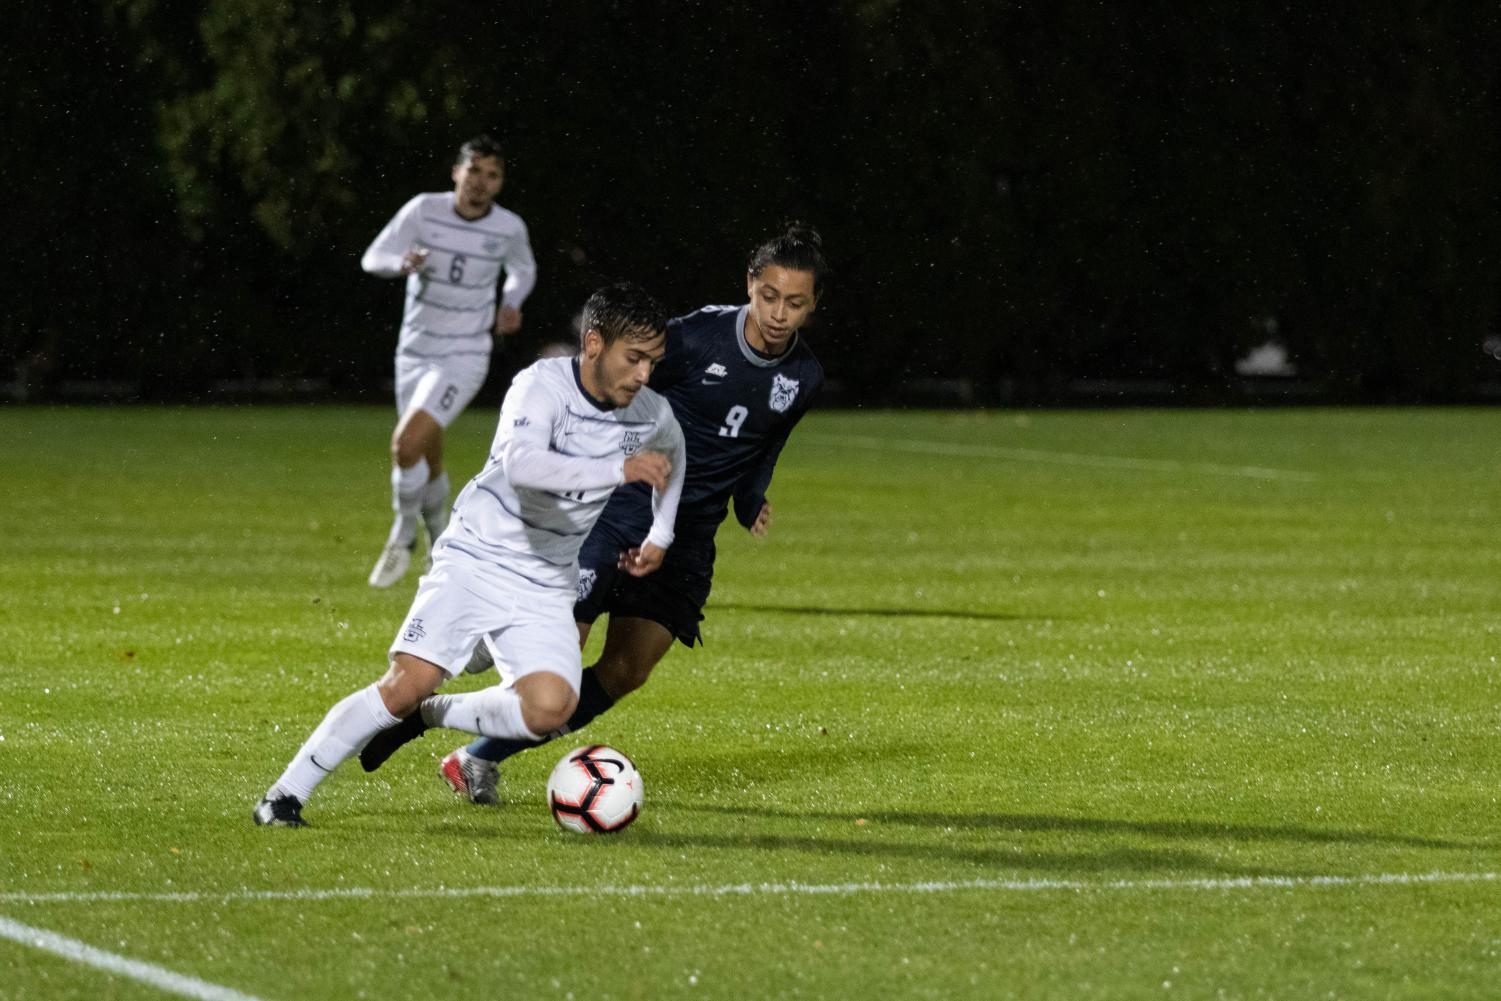 Connor Alba dribbles the ball in Marquette's 3-2 win against Butler.